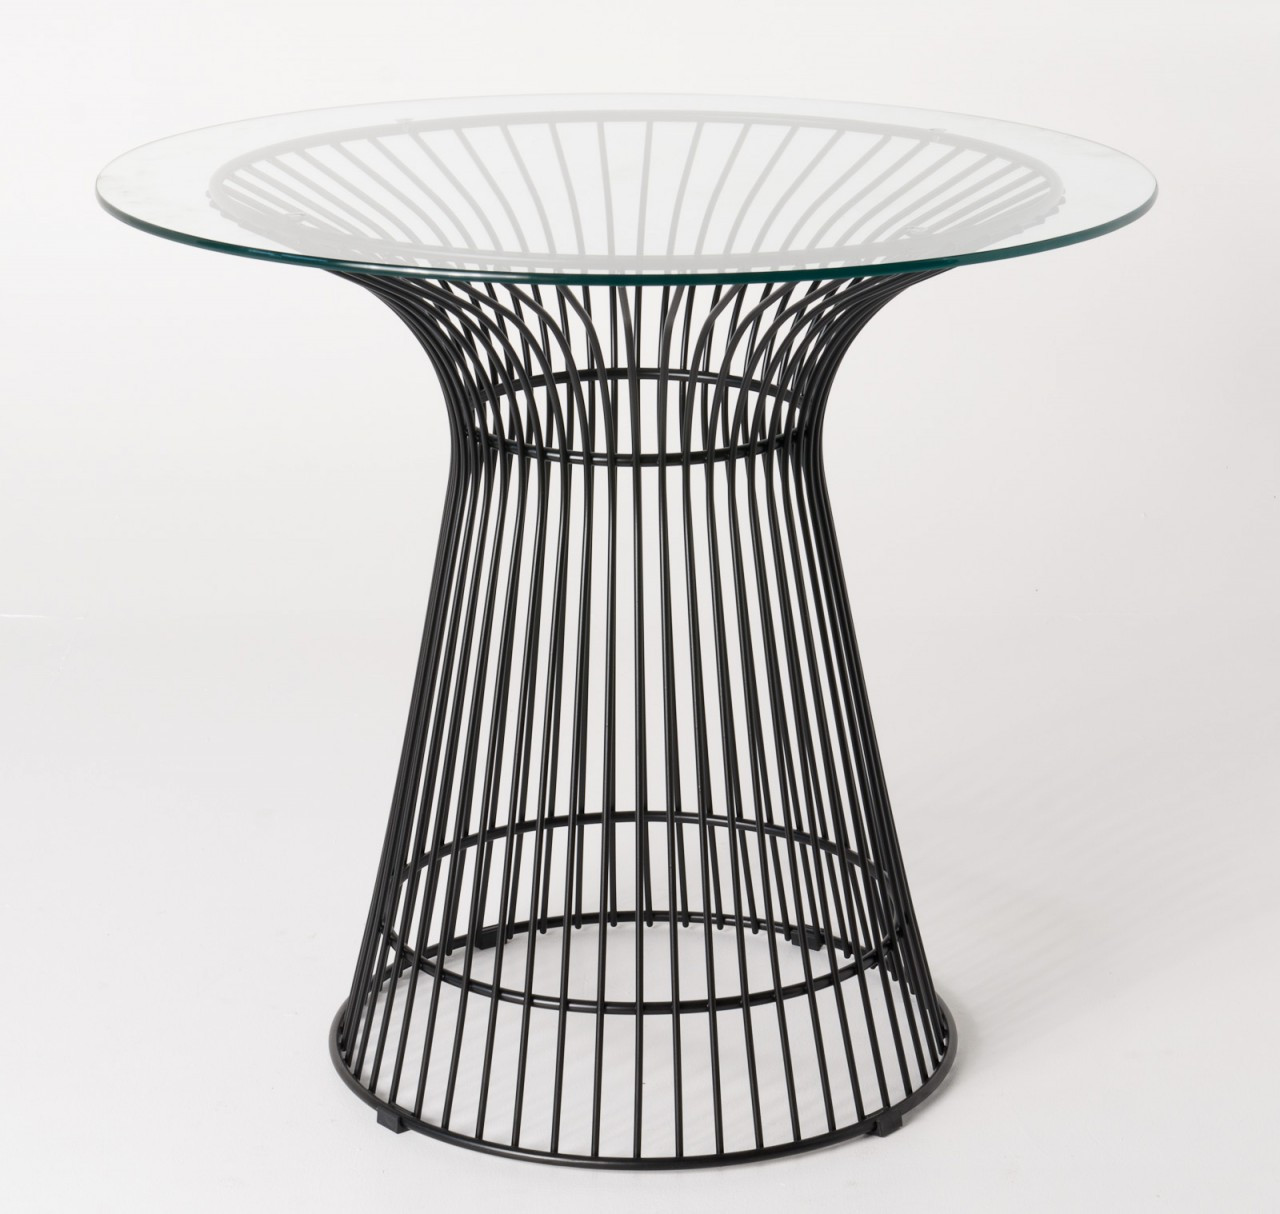 Replica Warren Platner - Wire Dining Table - Black Powdercoated - Glass Top - 80cm, 90cm